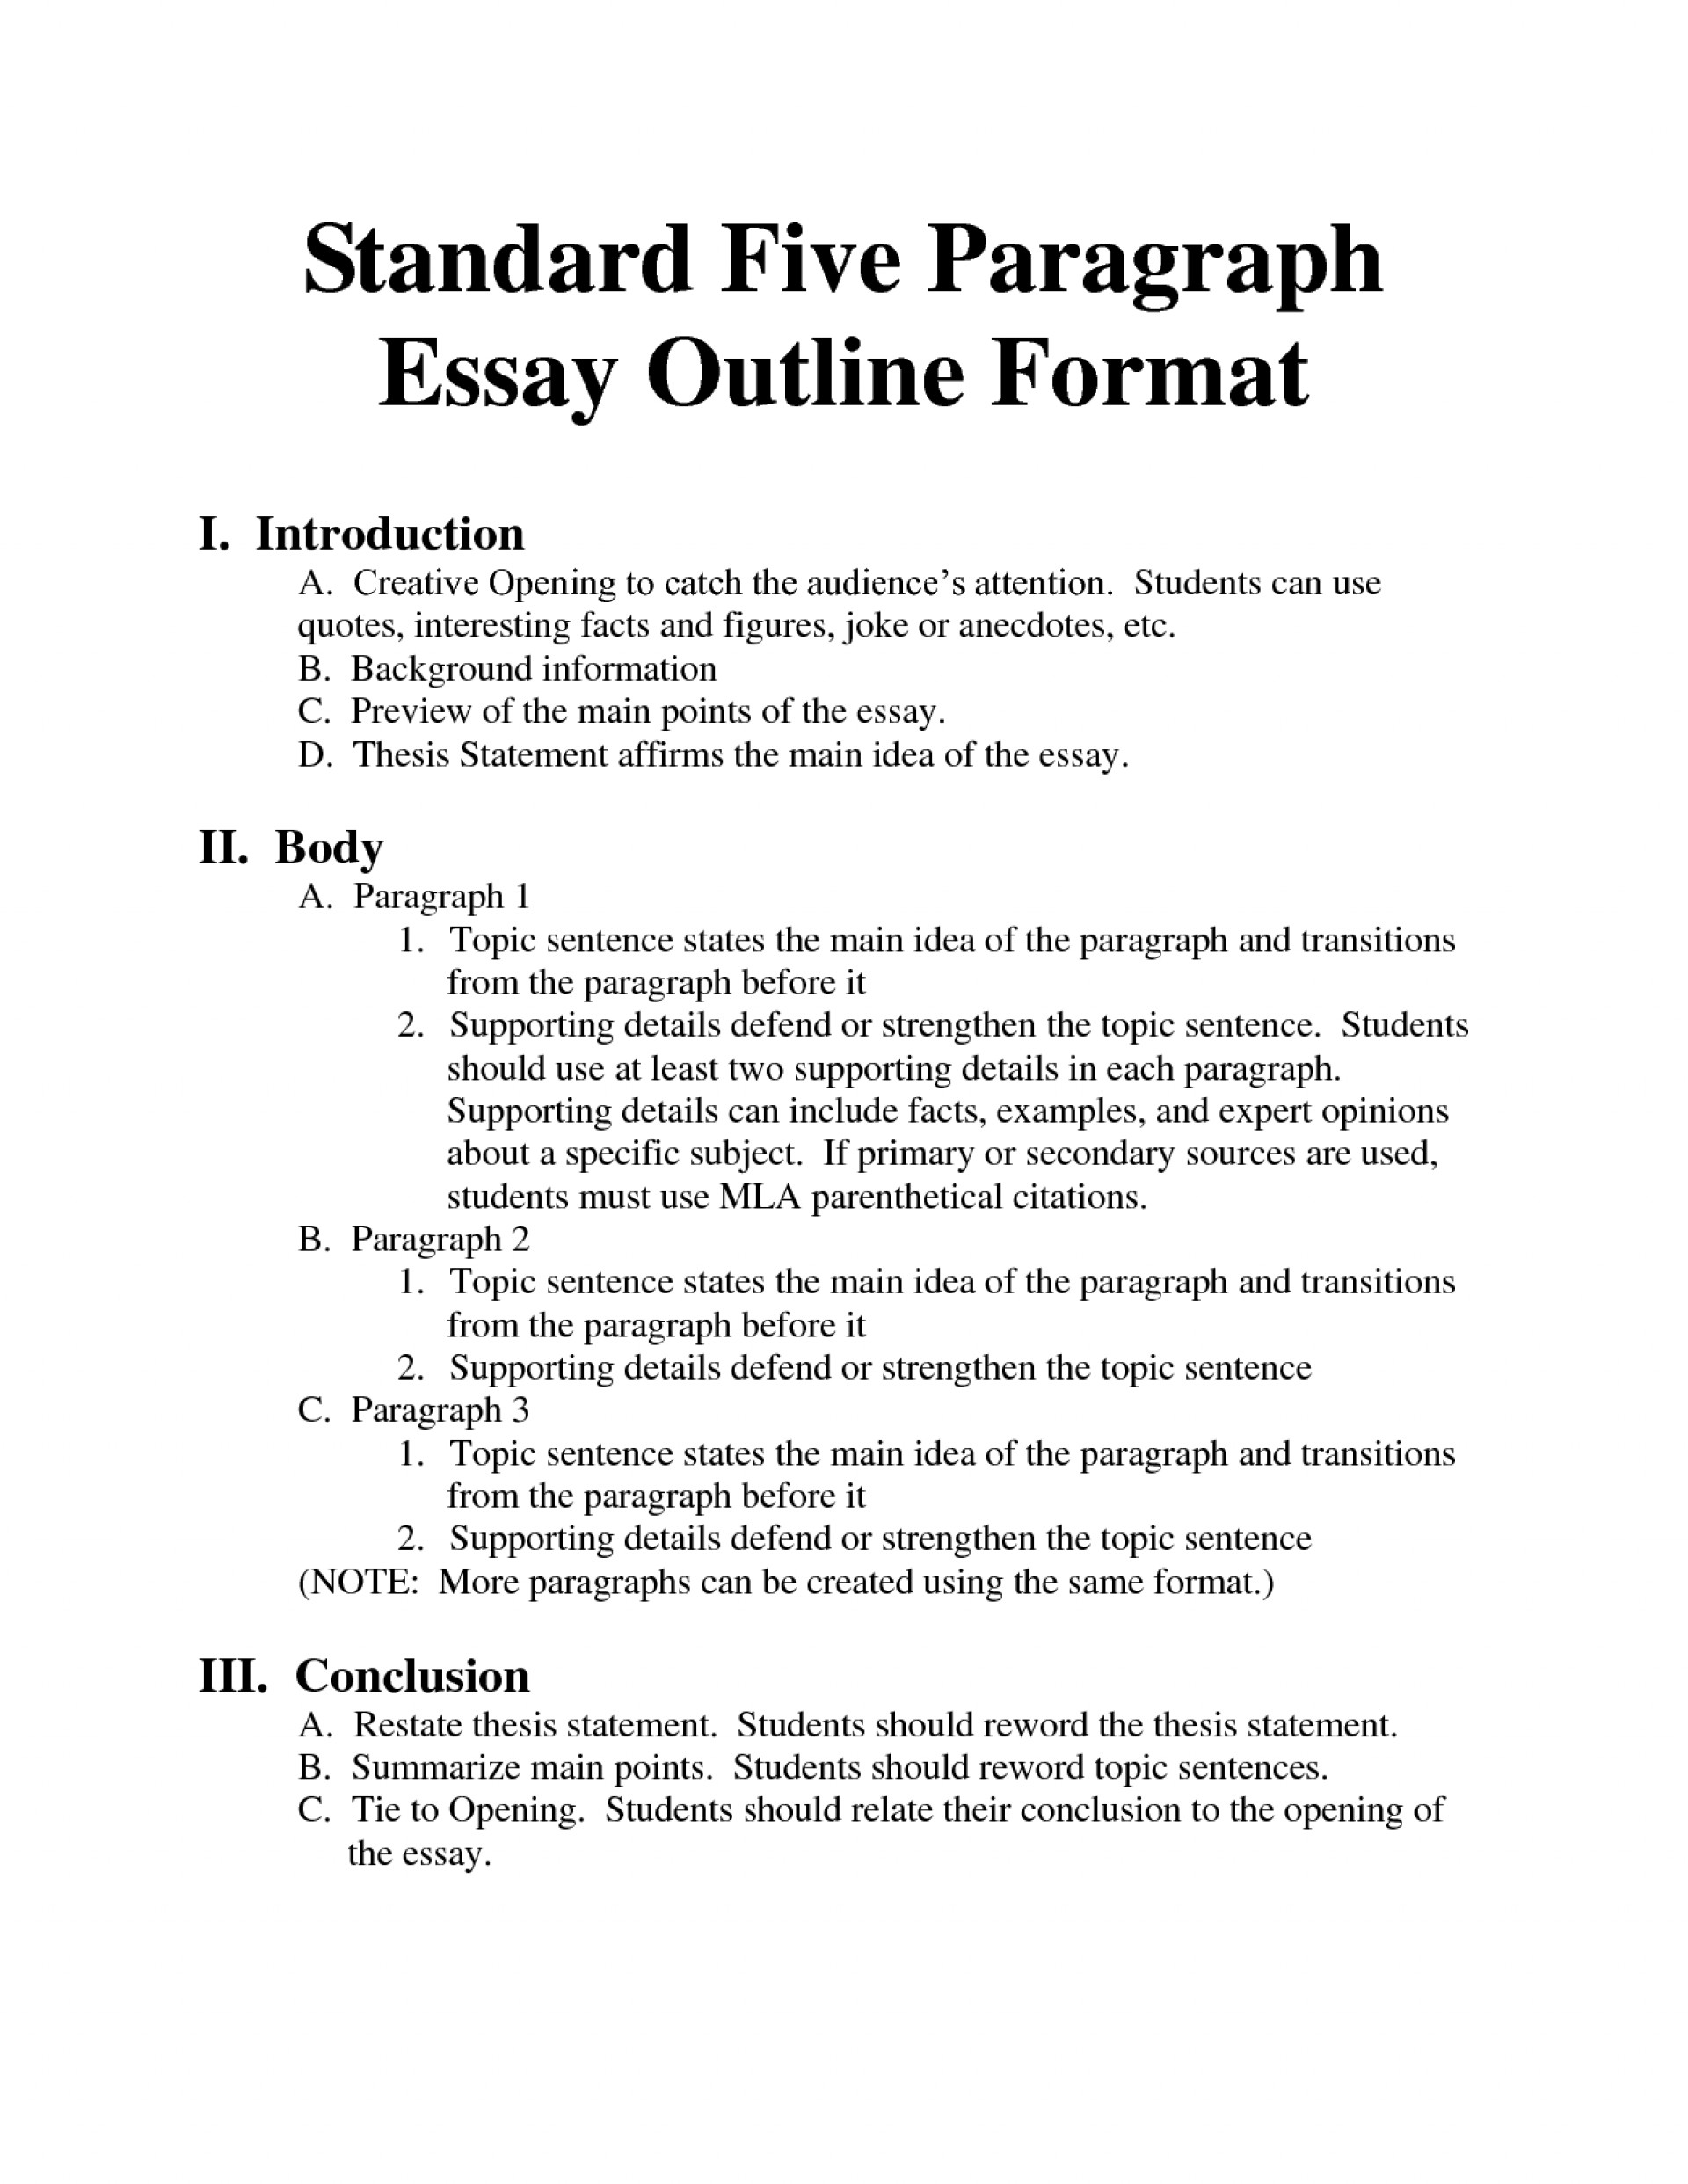 003 Paragraph Essay Format Example Dreaded 5 For Middle School Outline Template Pdf 1920